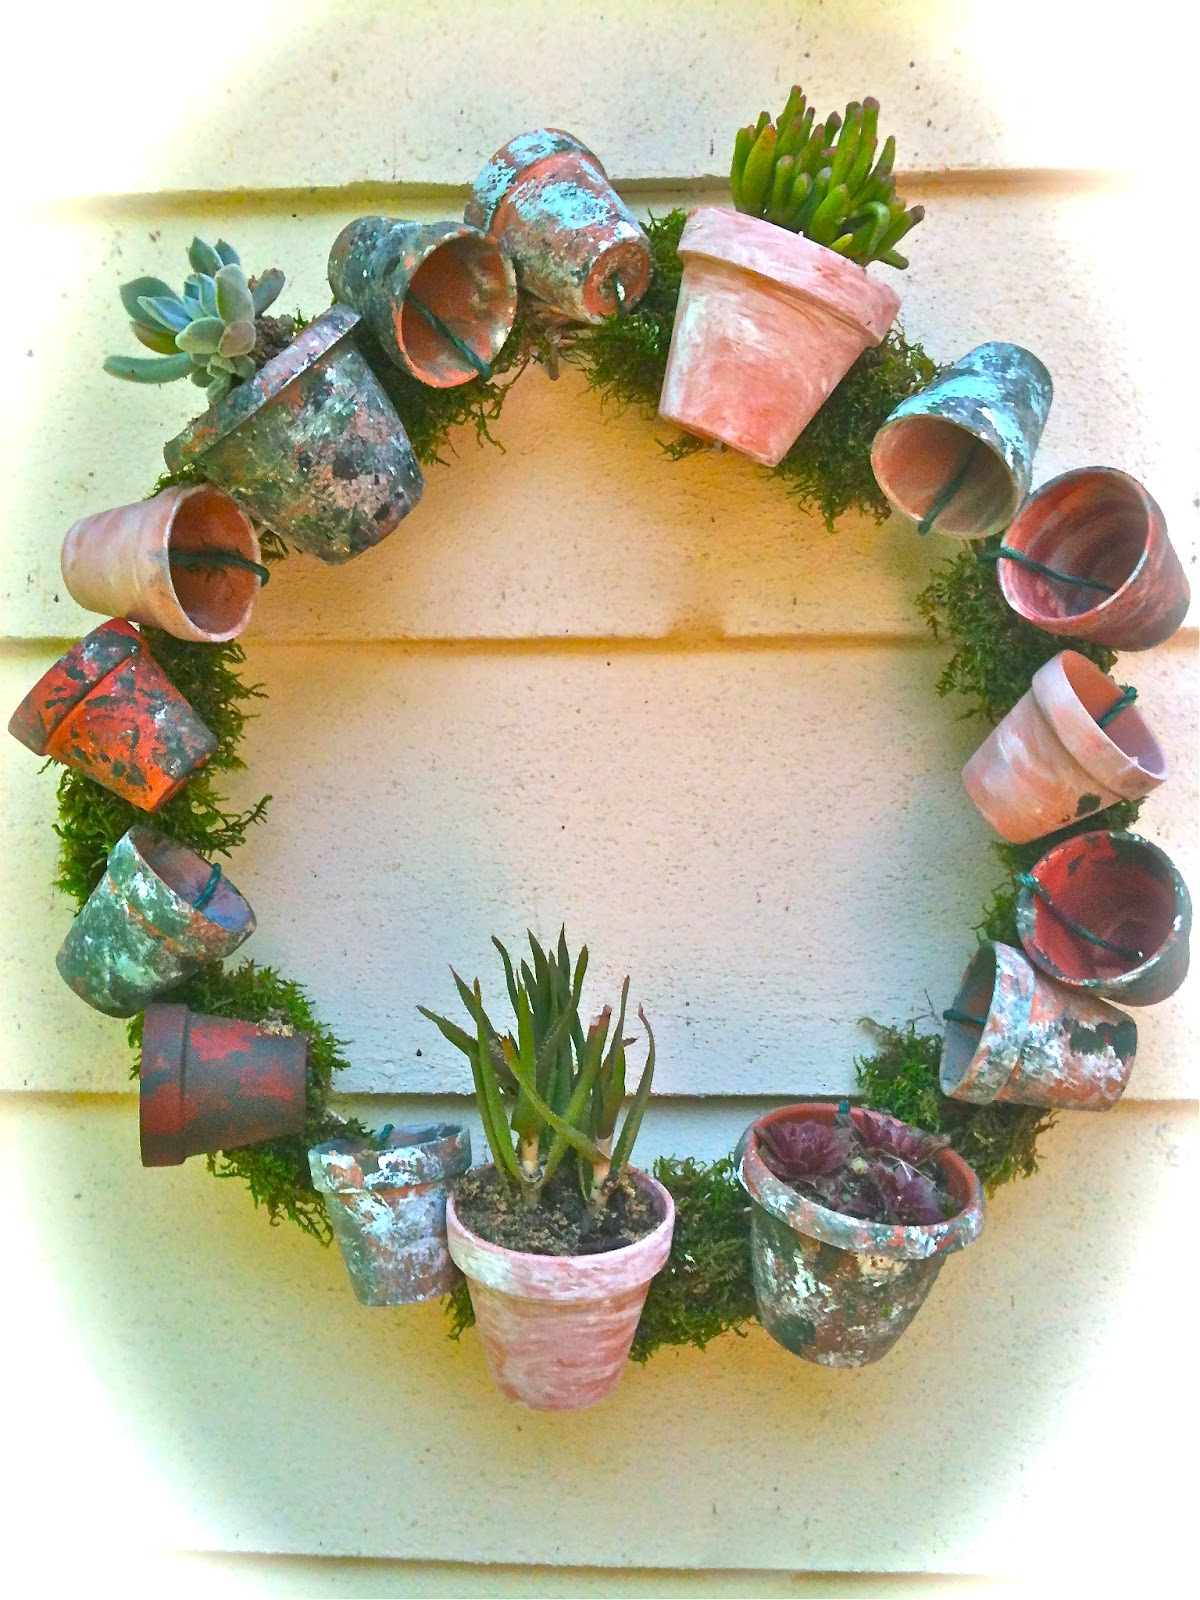 259 & everyday donna: How To Make Your Own Flower Pot Wreath To ...